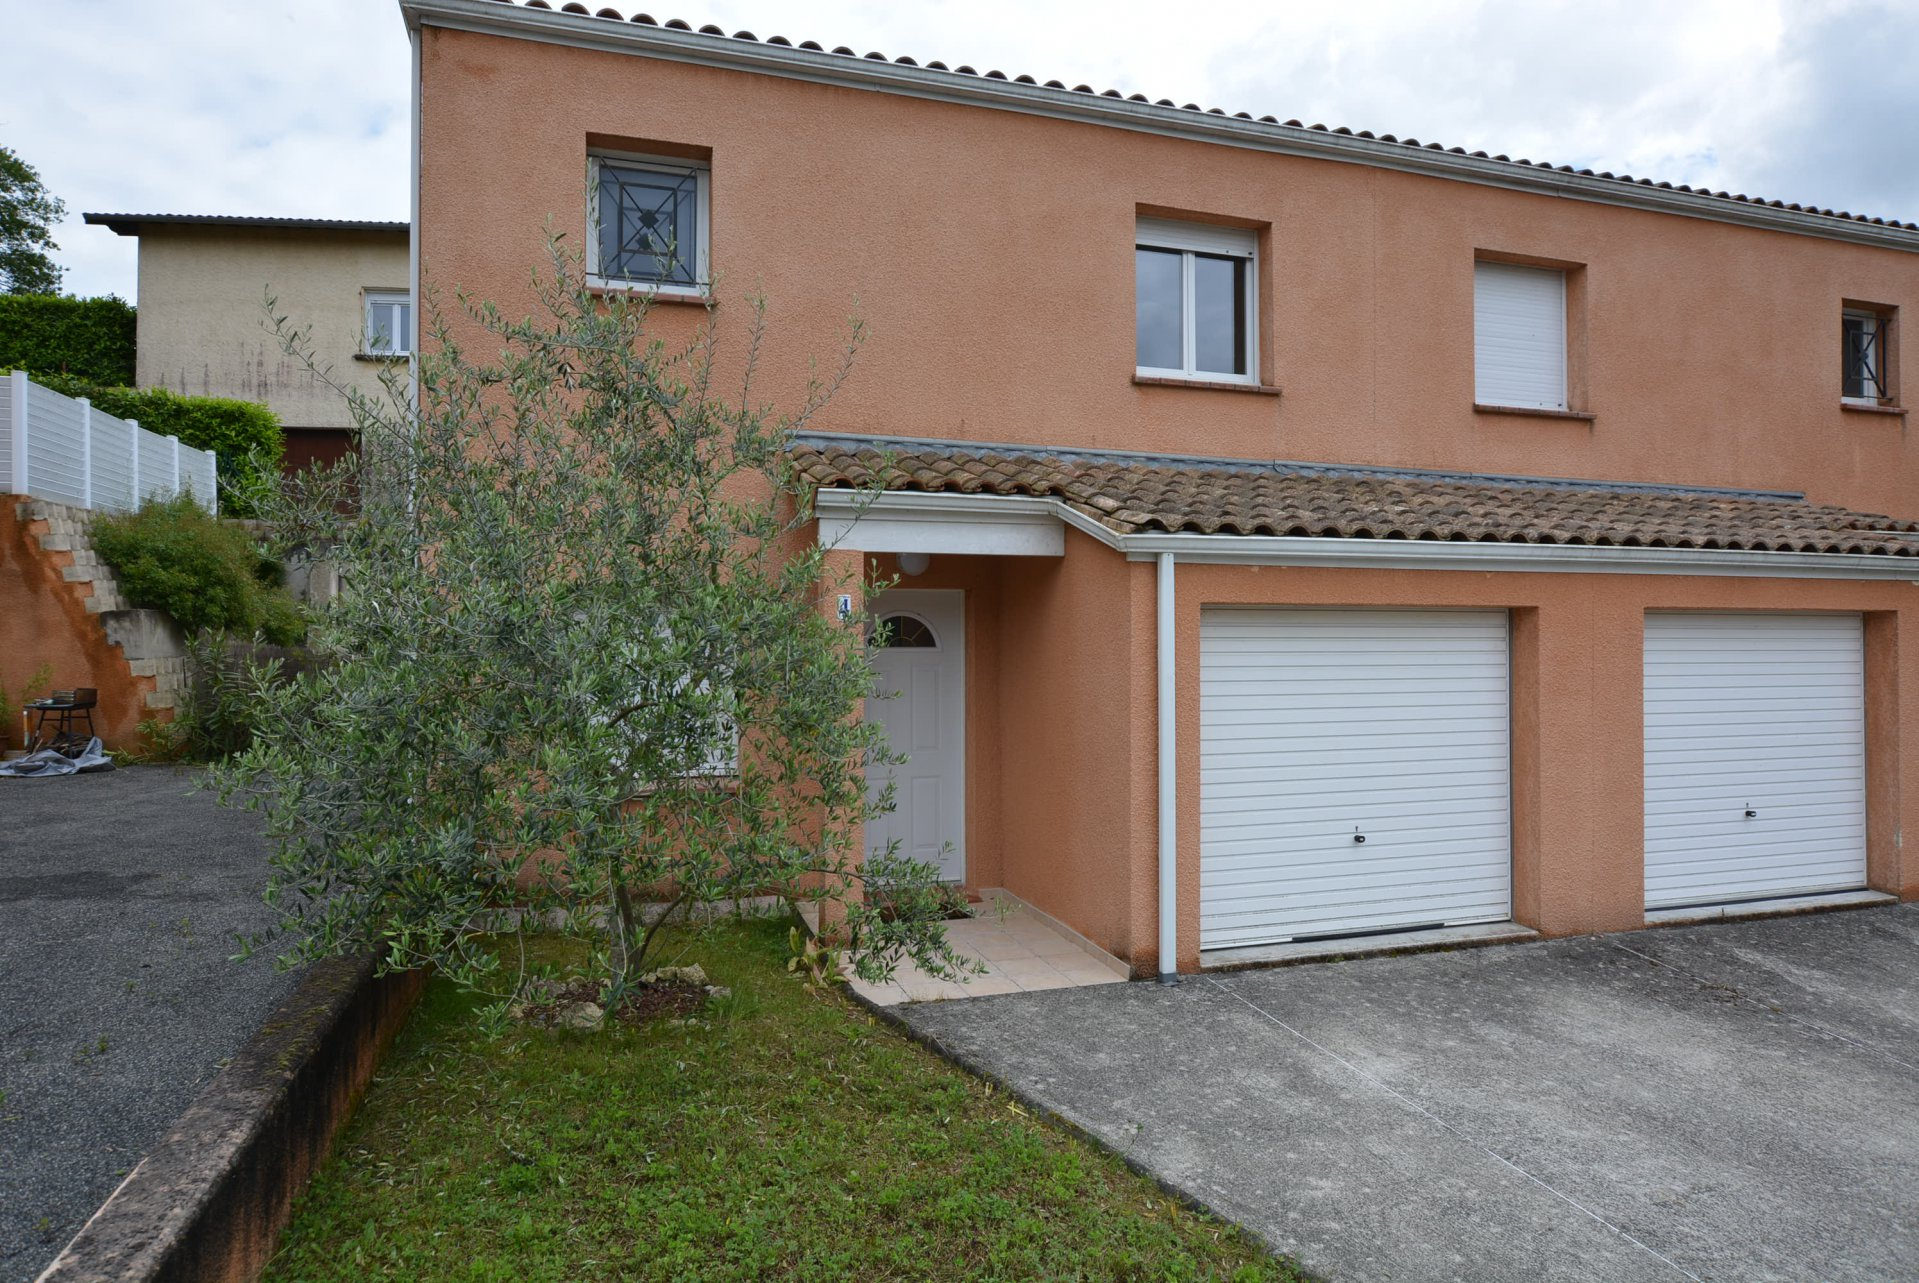 Location Villa - Quint Fonsegrives